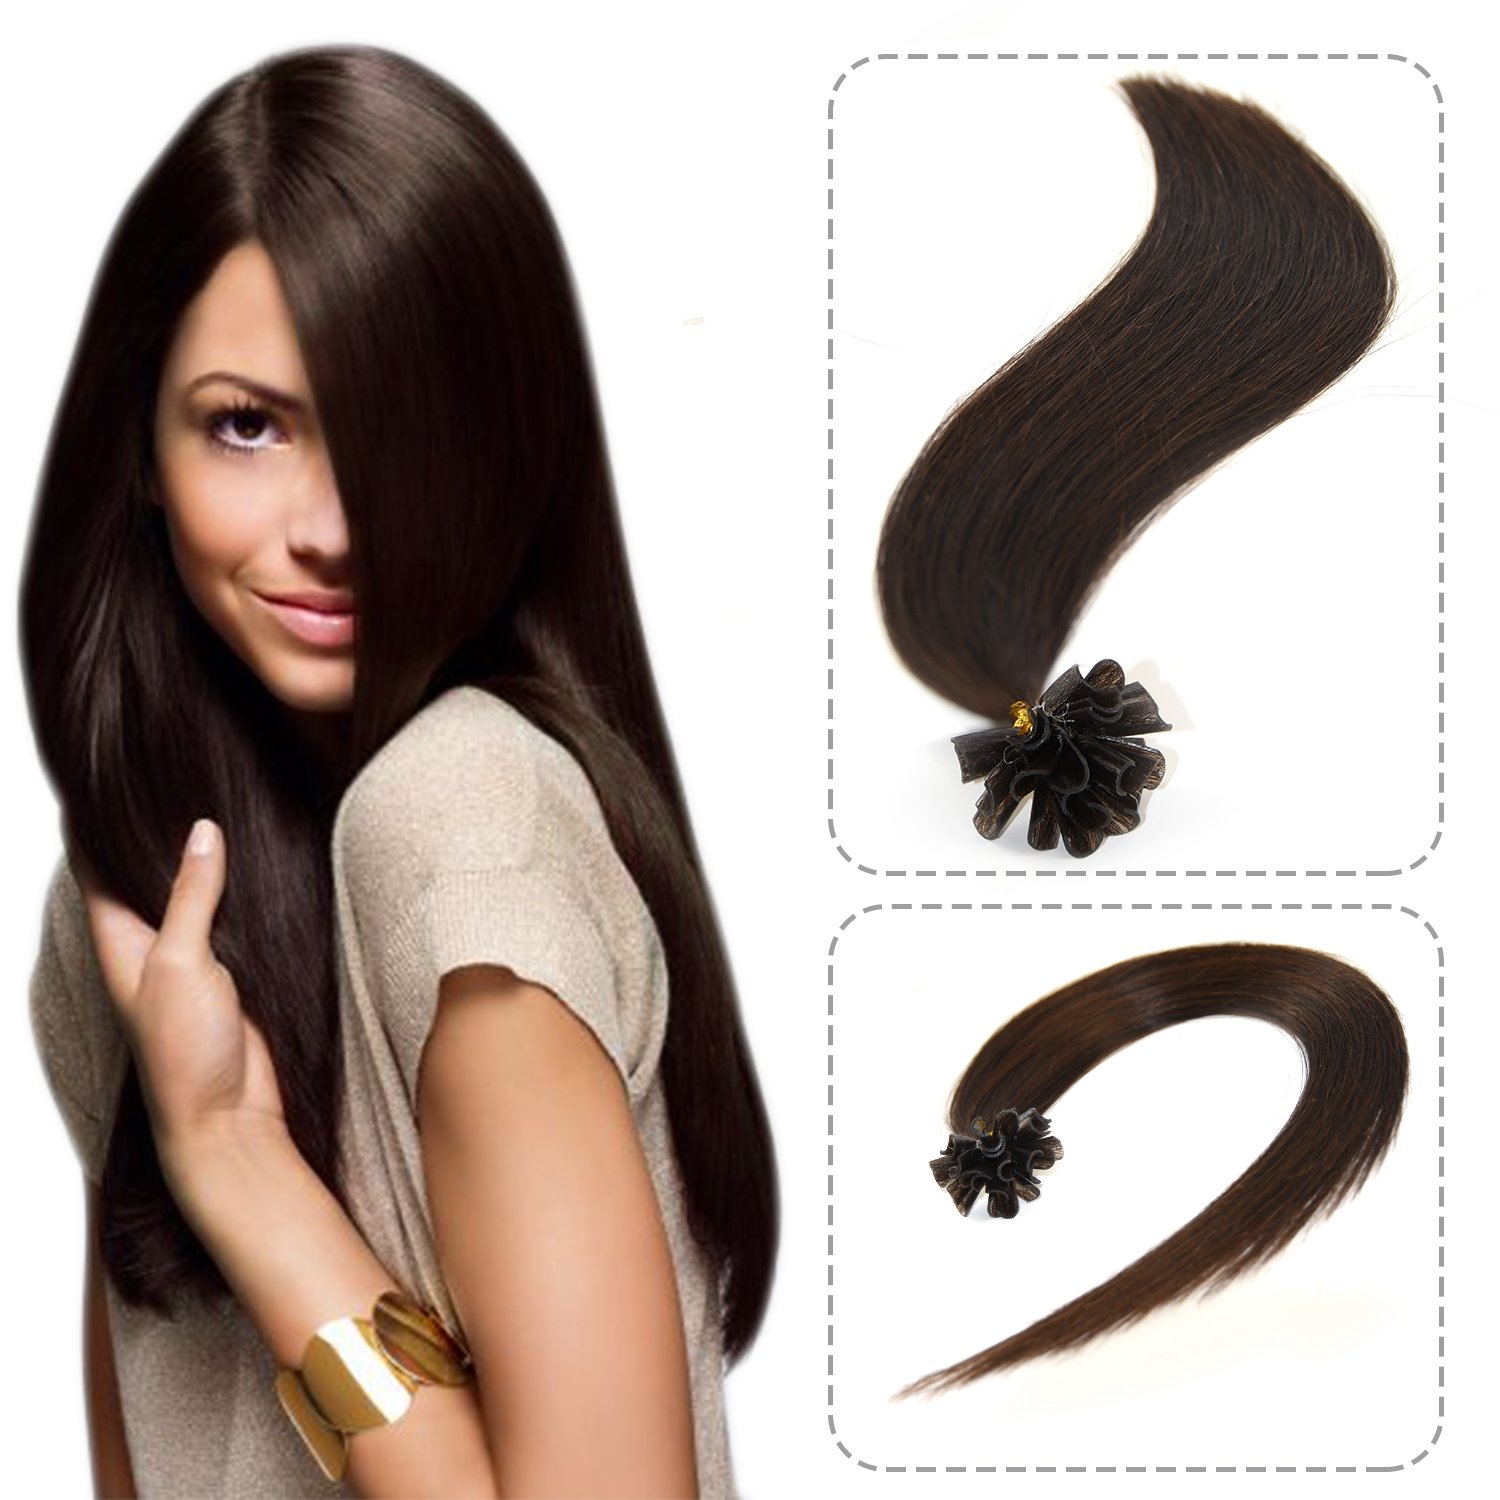 Cheap Human Hair Strands Find Human Hair Strands Deals On Line At